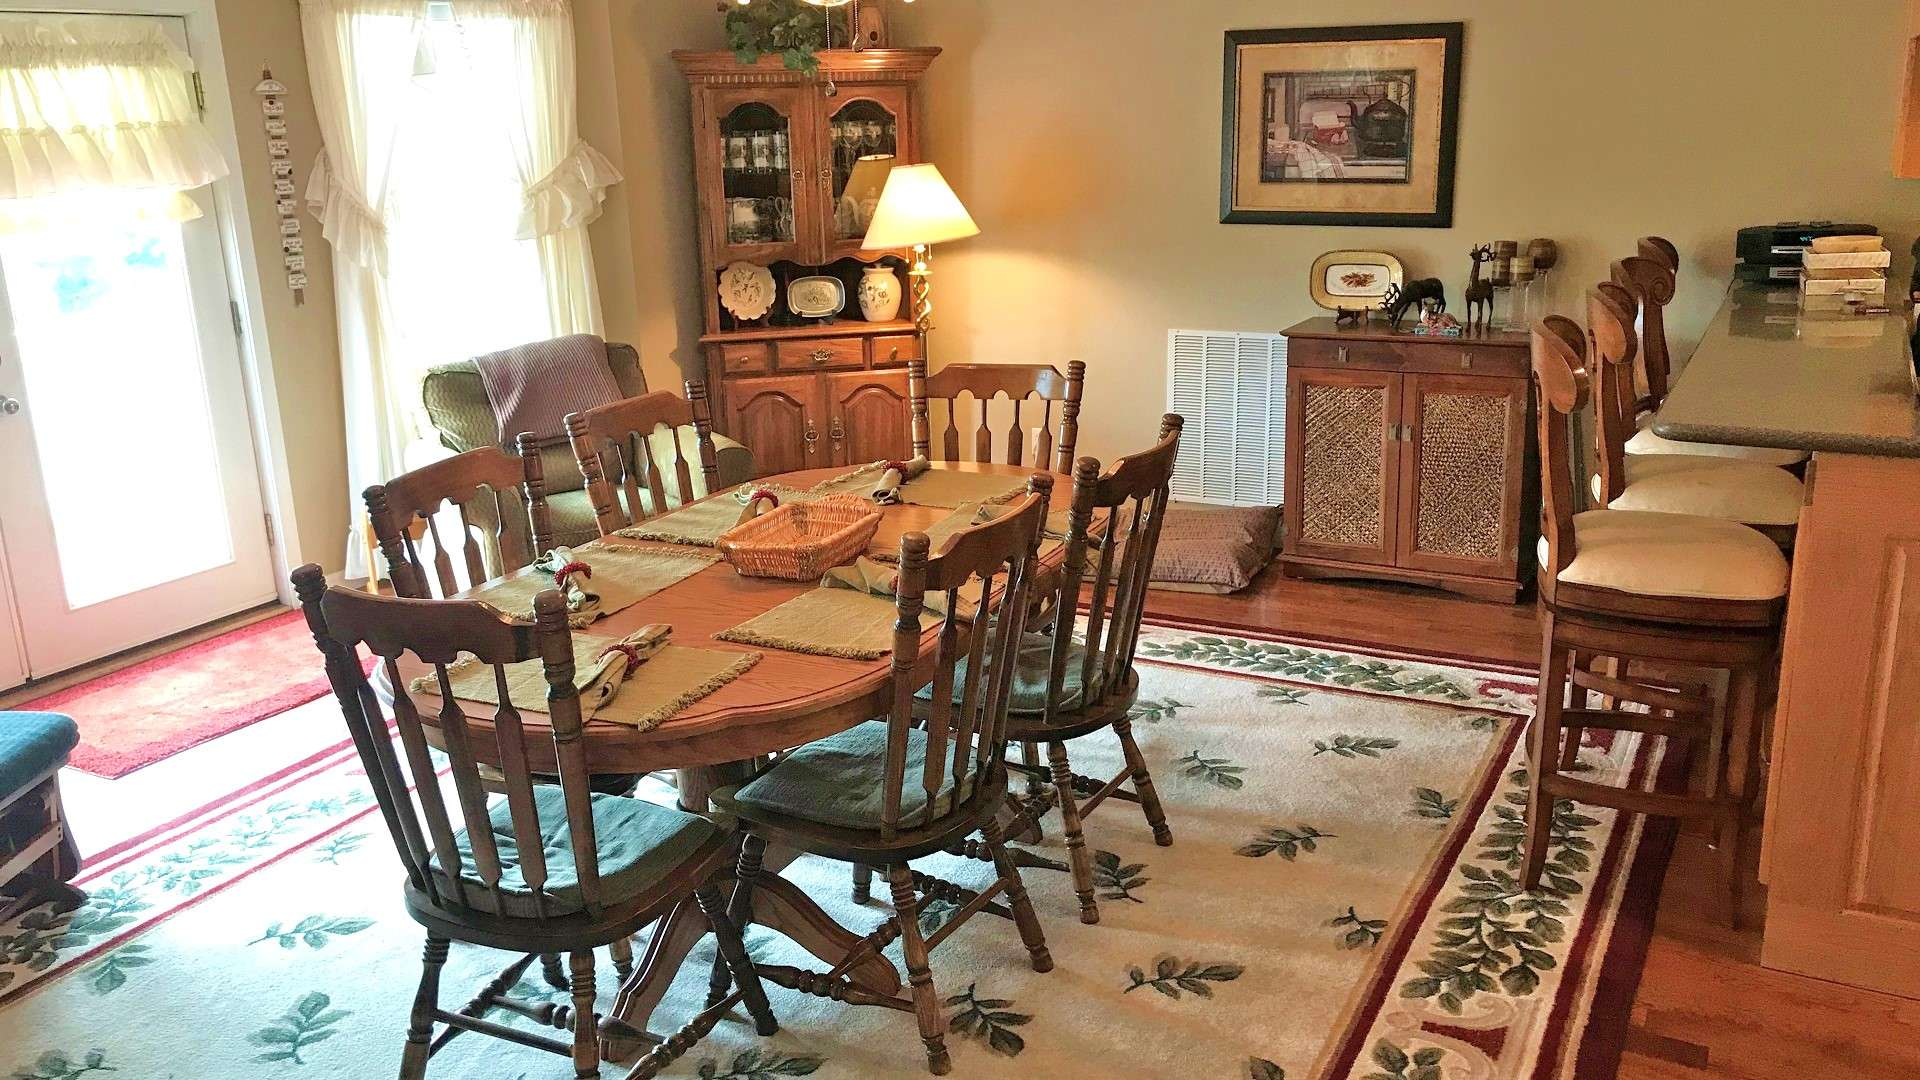 The spacious dining area is perfect for entertaining dinner guests, or a candlelight dinner for two.